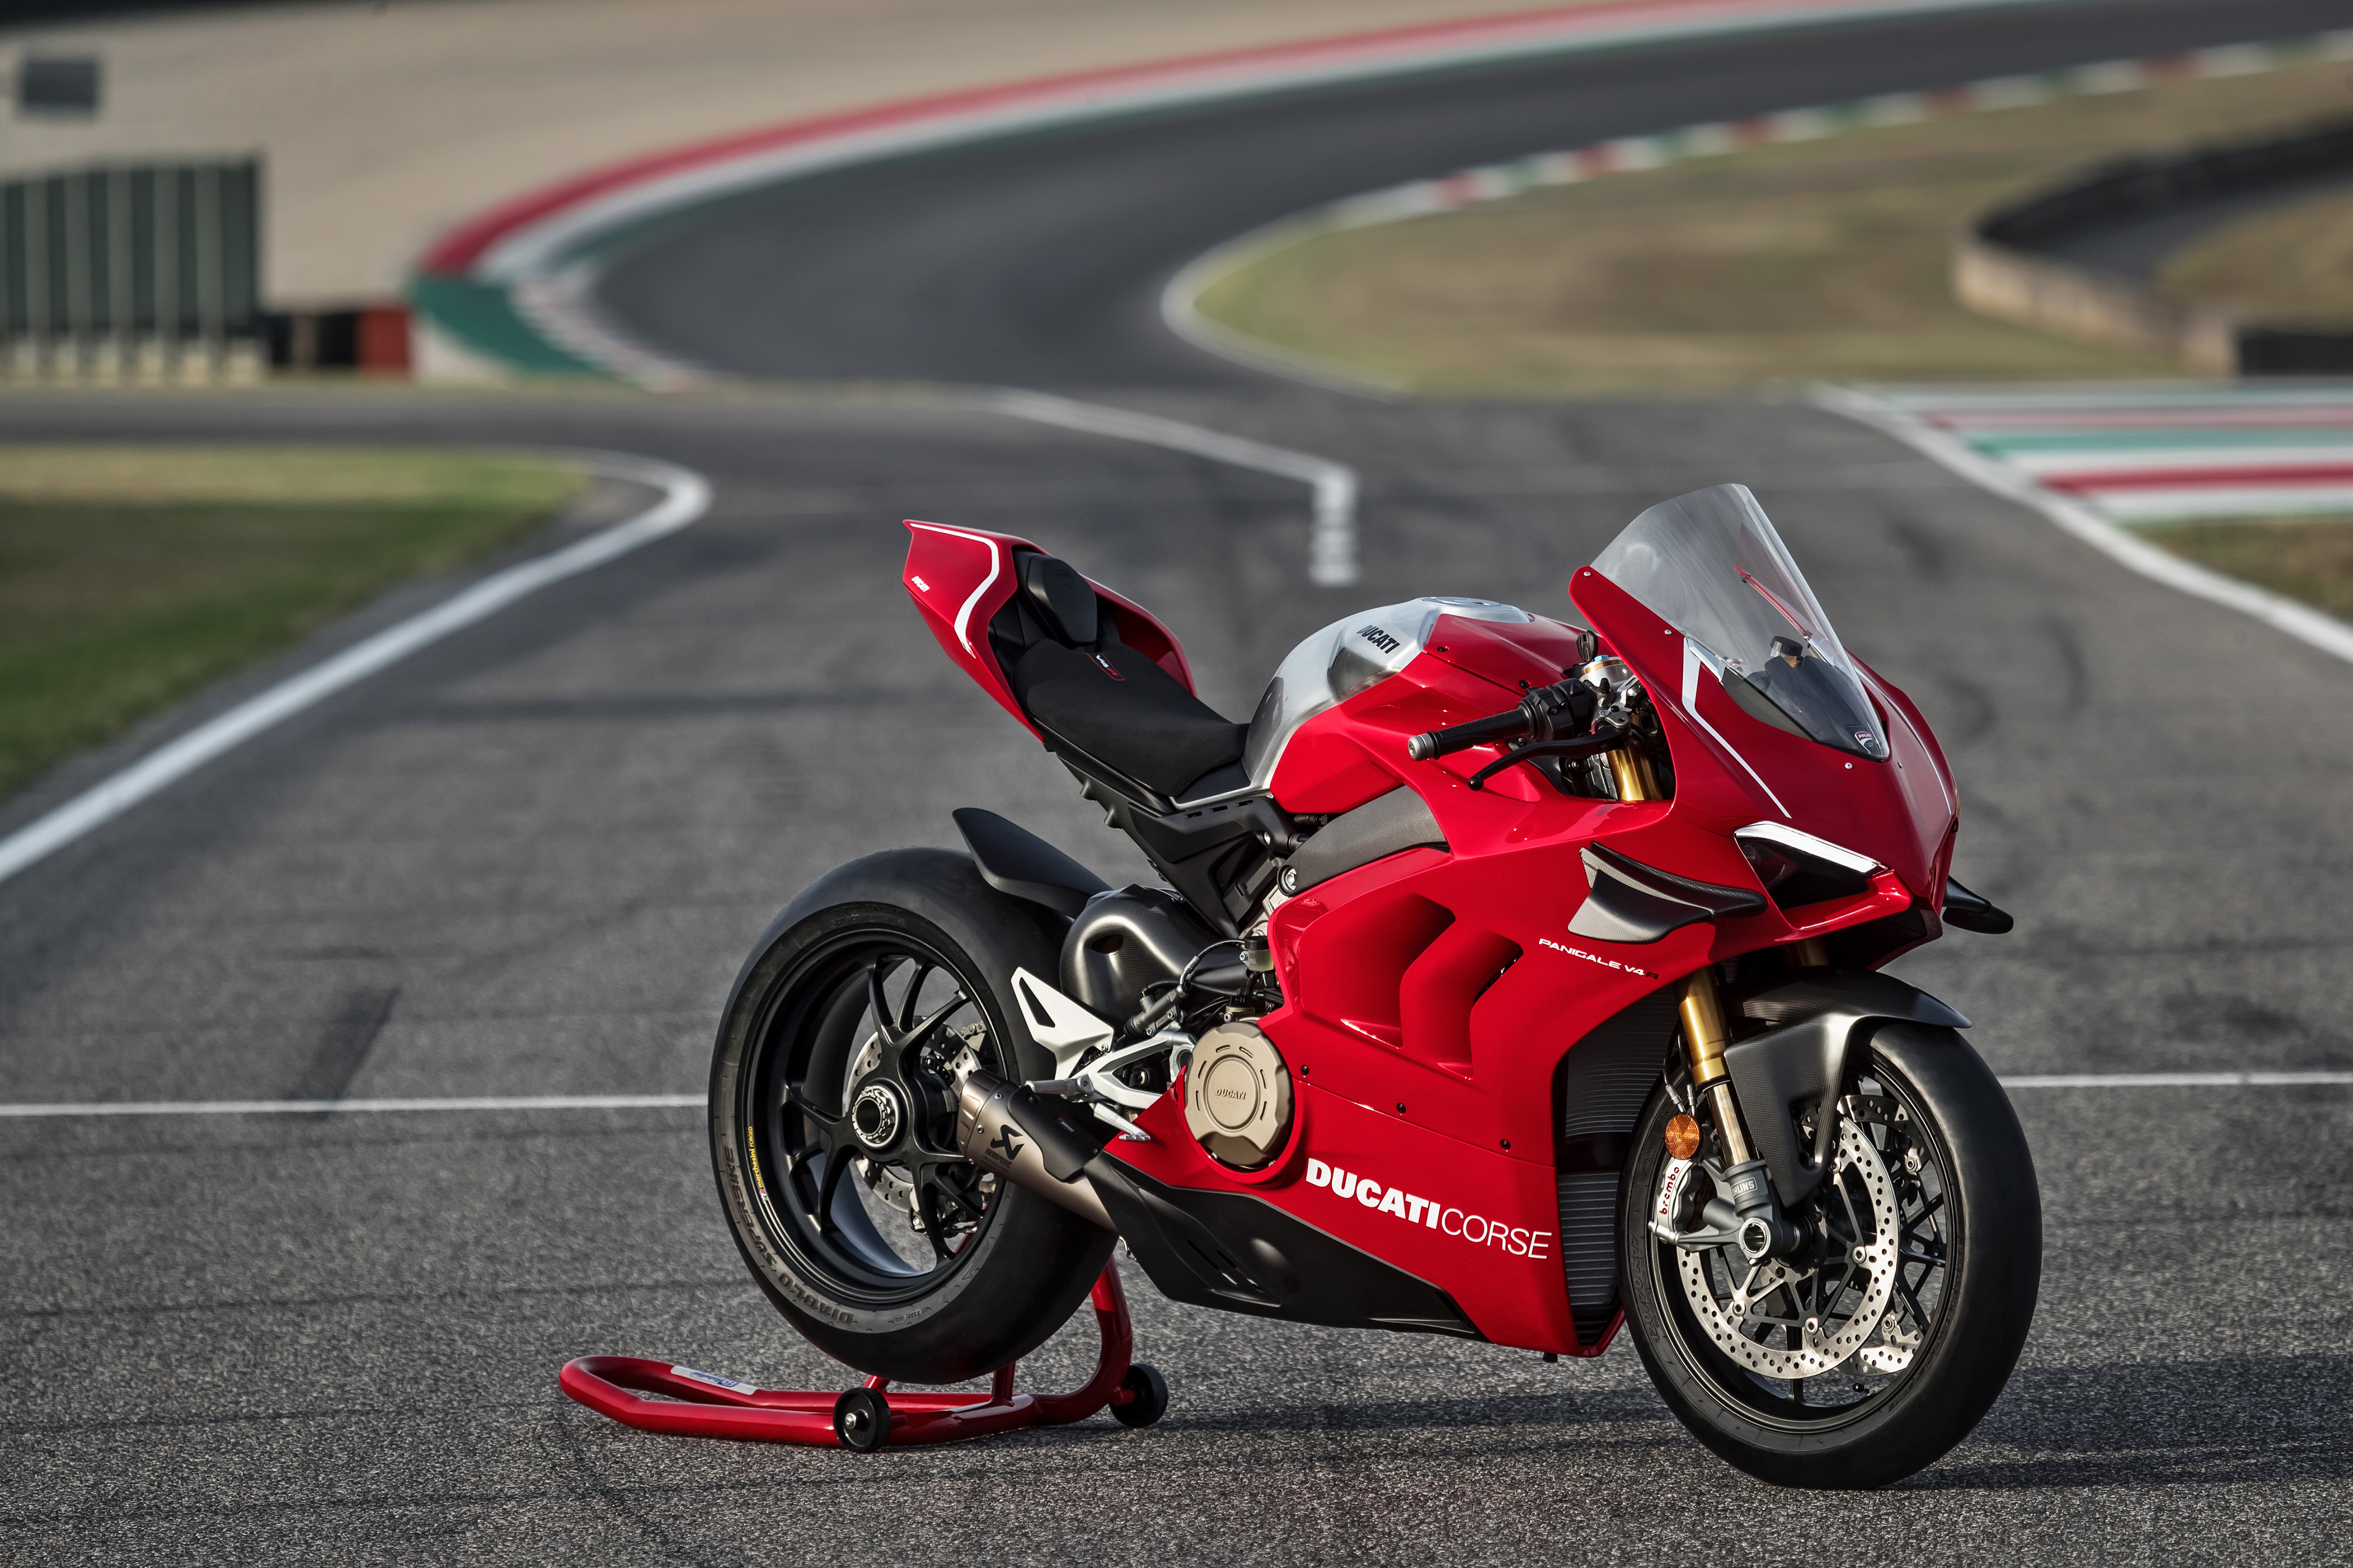 06_DUCATI PANIGALE V4 R ACTION_UC69244_Mid